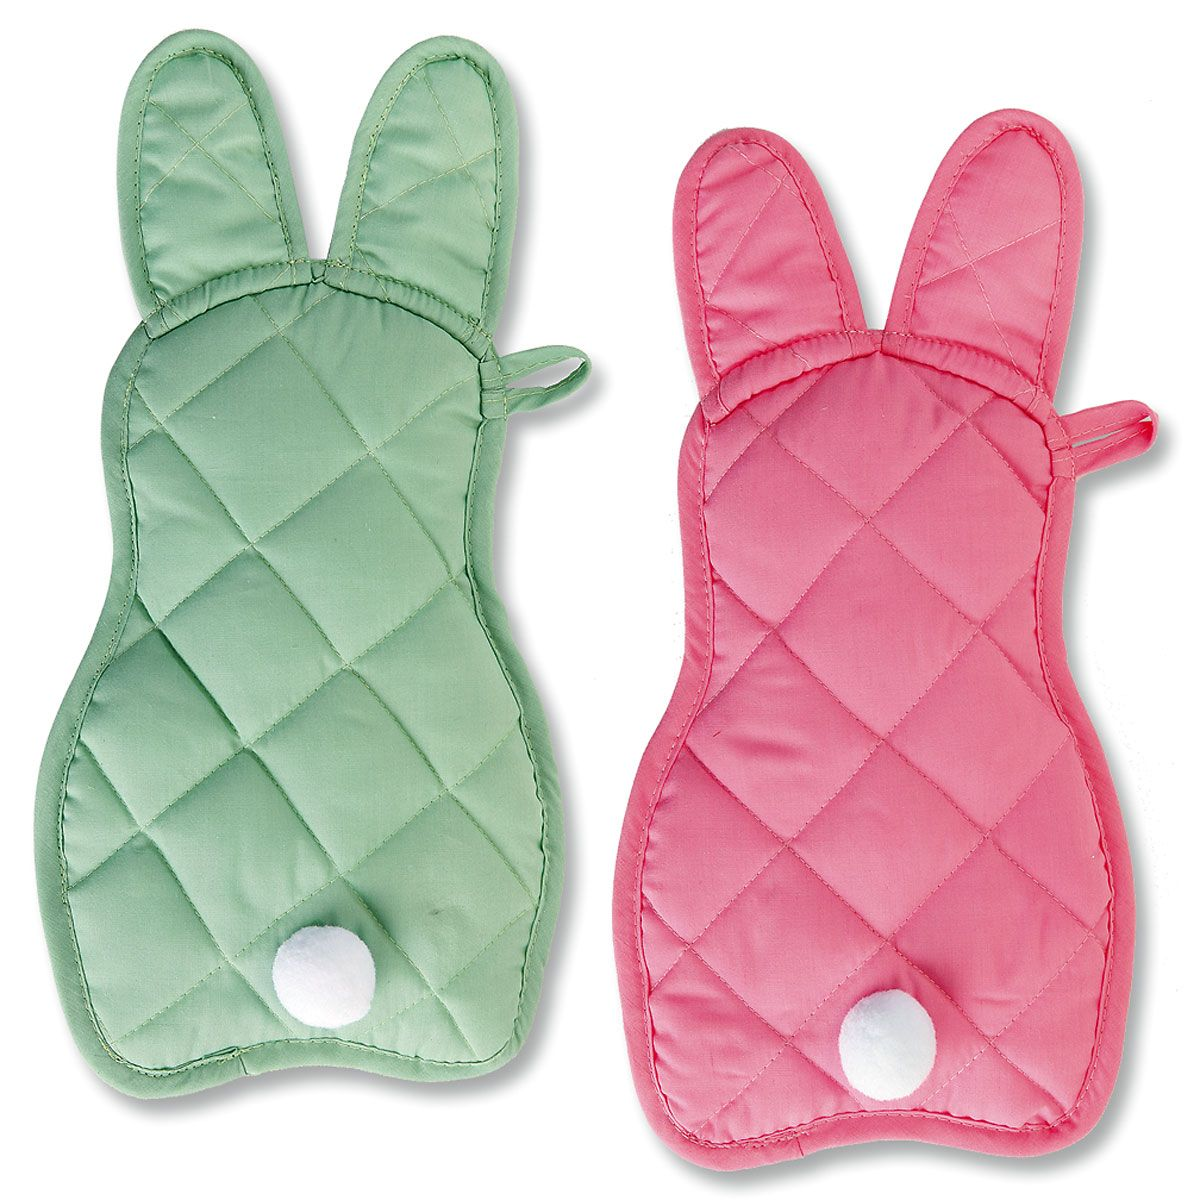 Bunny Hot Pads